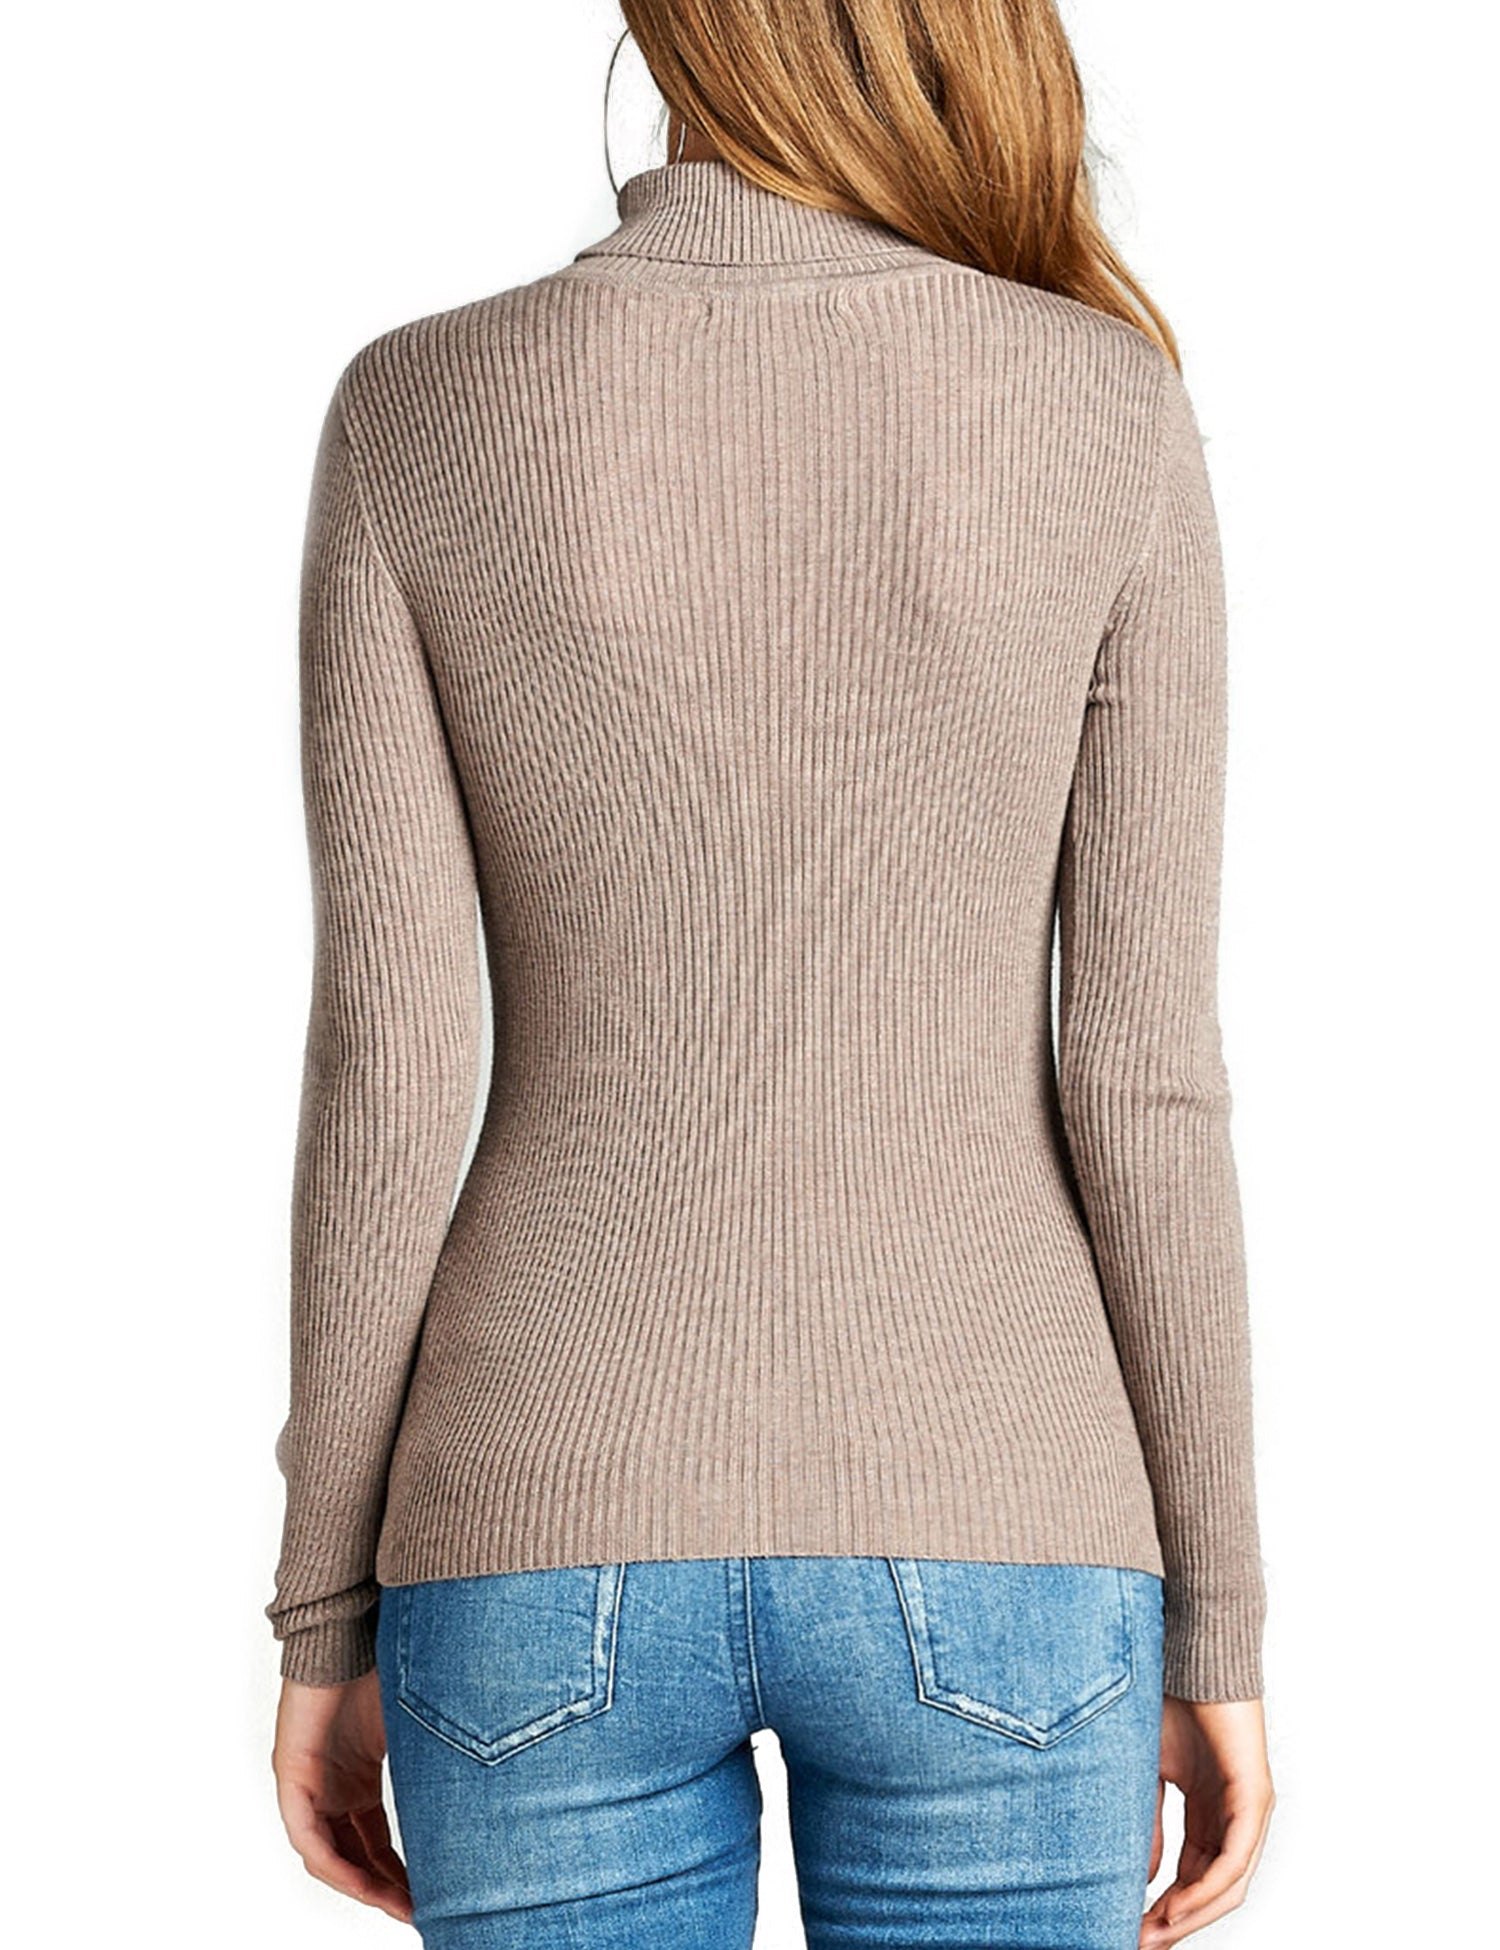 ccd5befcb83fbc ... Womens Long Sleeve Fitted Turtle Neck Ribbed Sweater Top ...